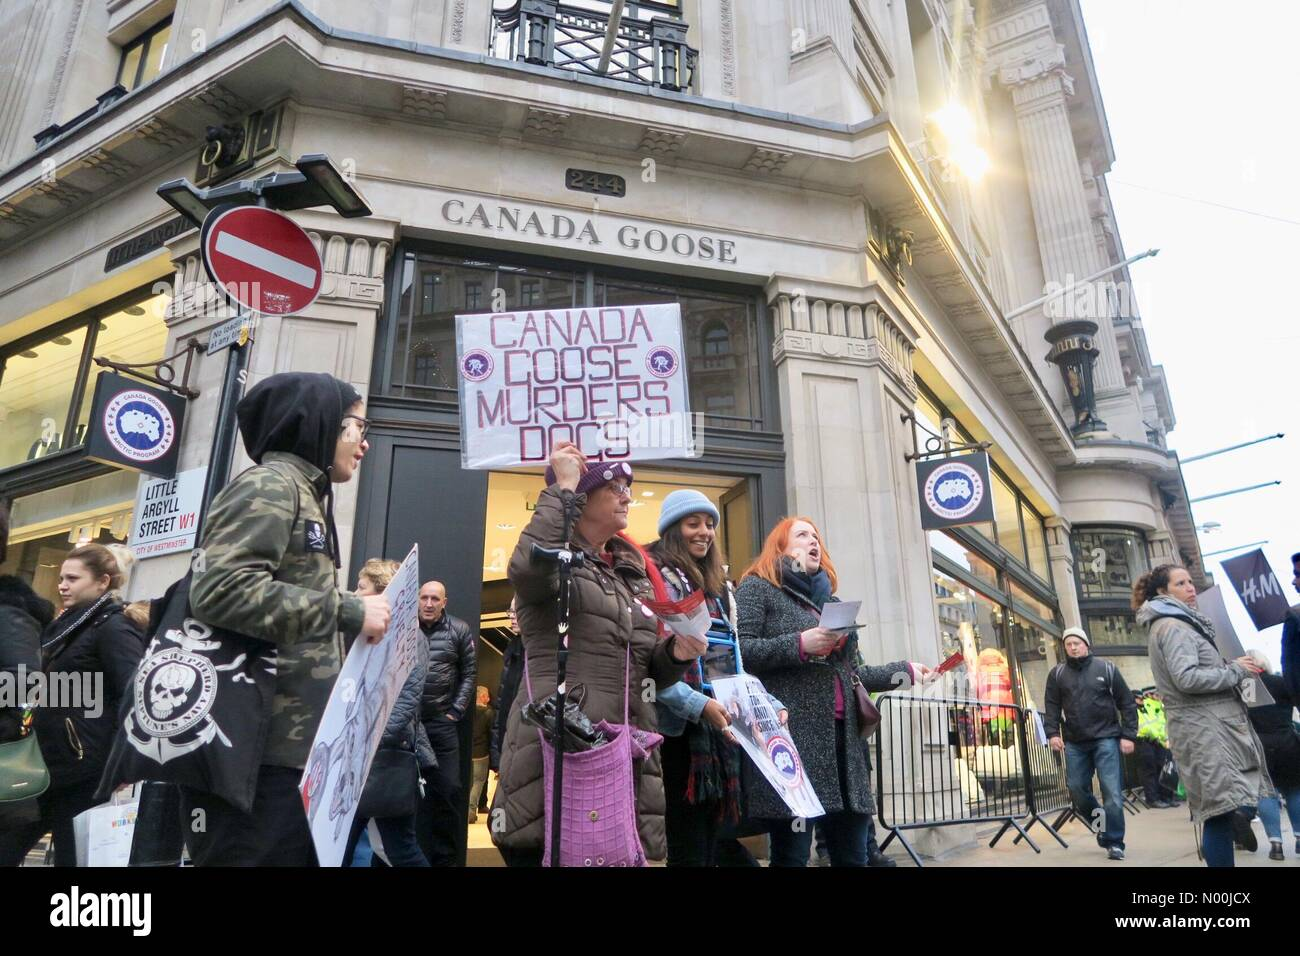 Regent Street, London, UK. 23rd Dec, 2017. Animal rights activists demonstrate outside a Canada Goose store about alleged animal rights abuse, ...